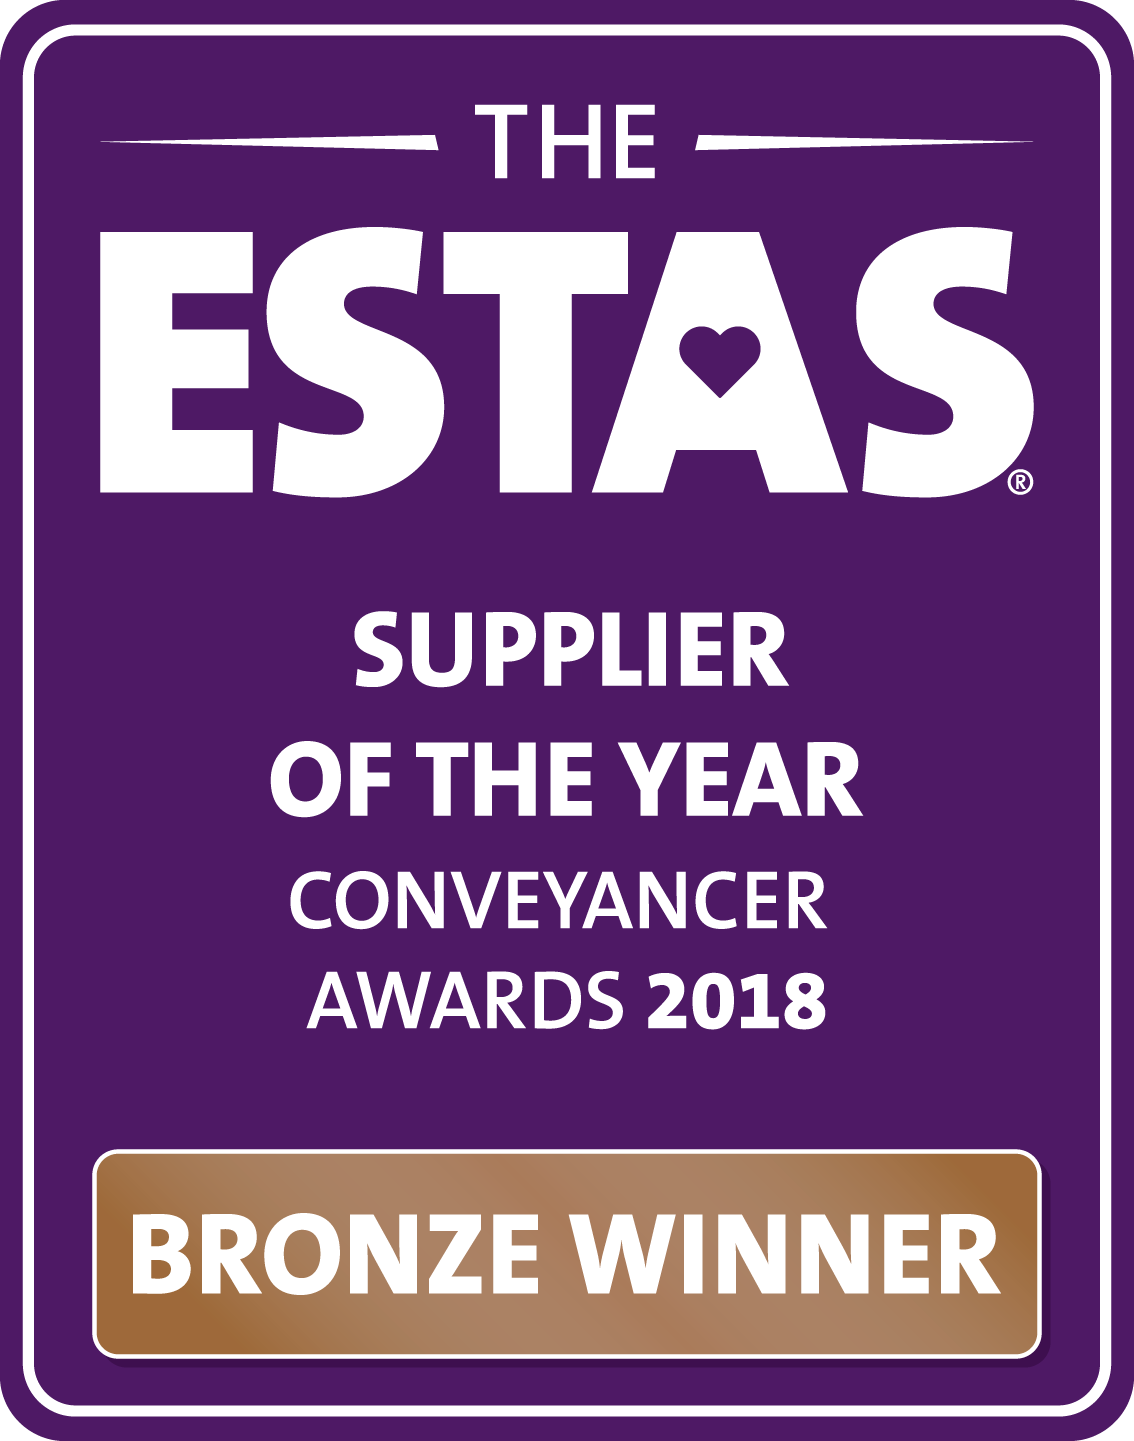 PHIL SPENCER ANNOUNCES UK'S TOP CONVEYANCERS AT THE ESTAS, THE MOST PRESTIGIOUS AWARDS IN THE PROPERTY INDUSTRY